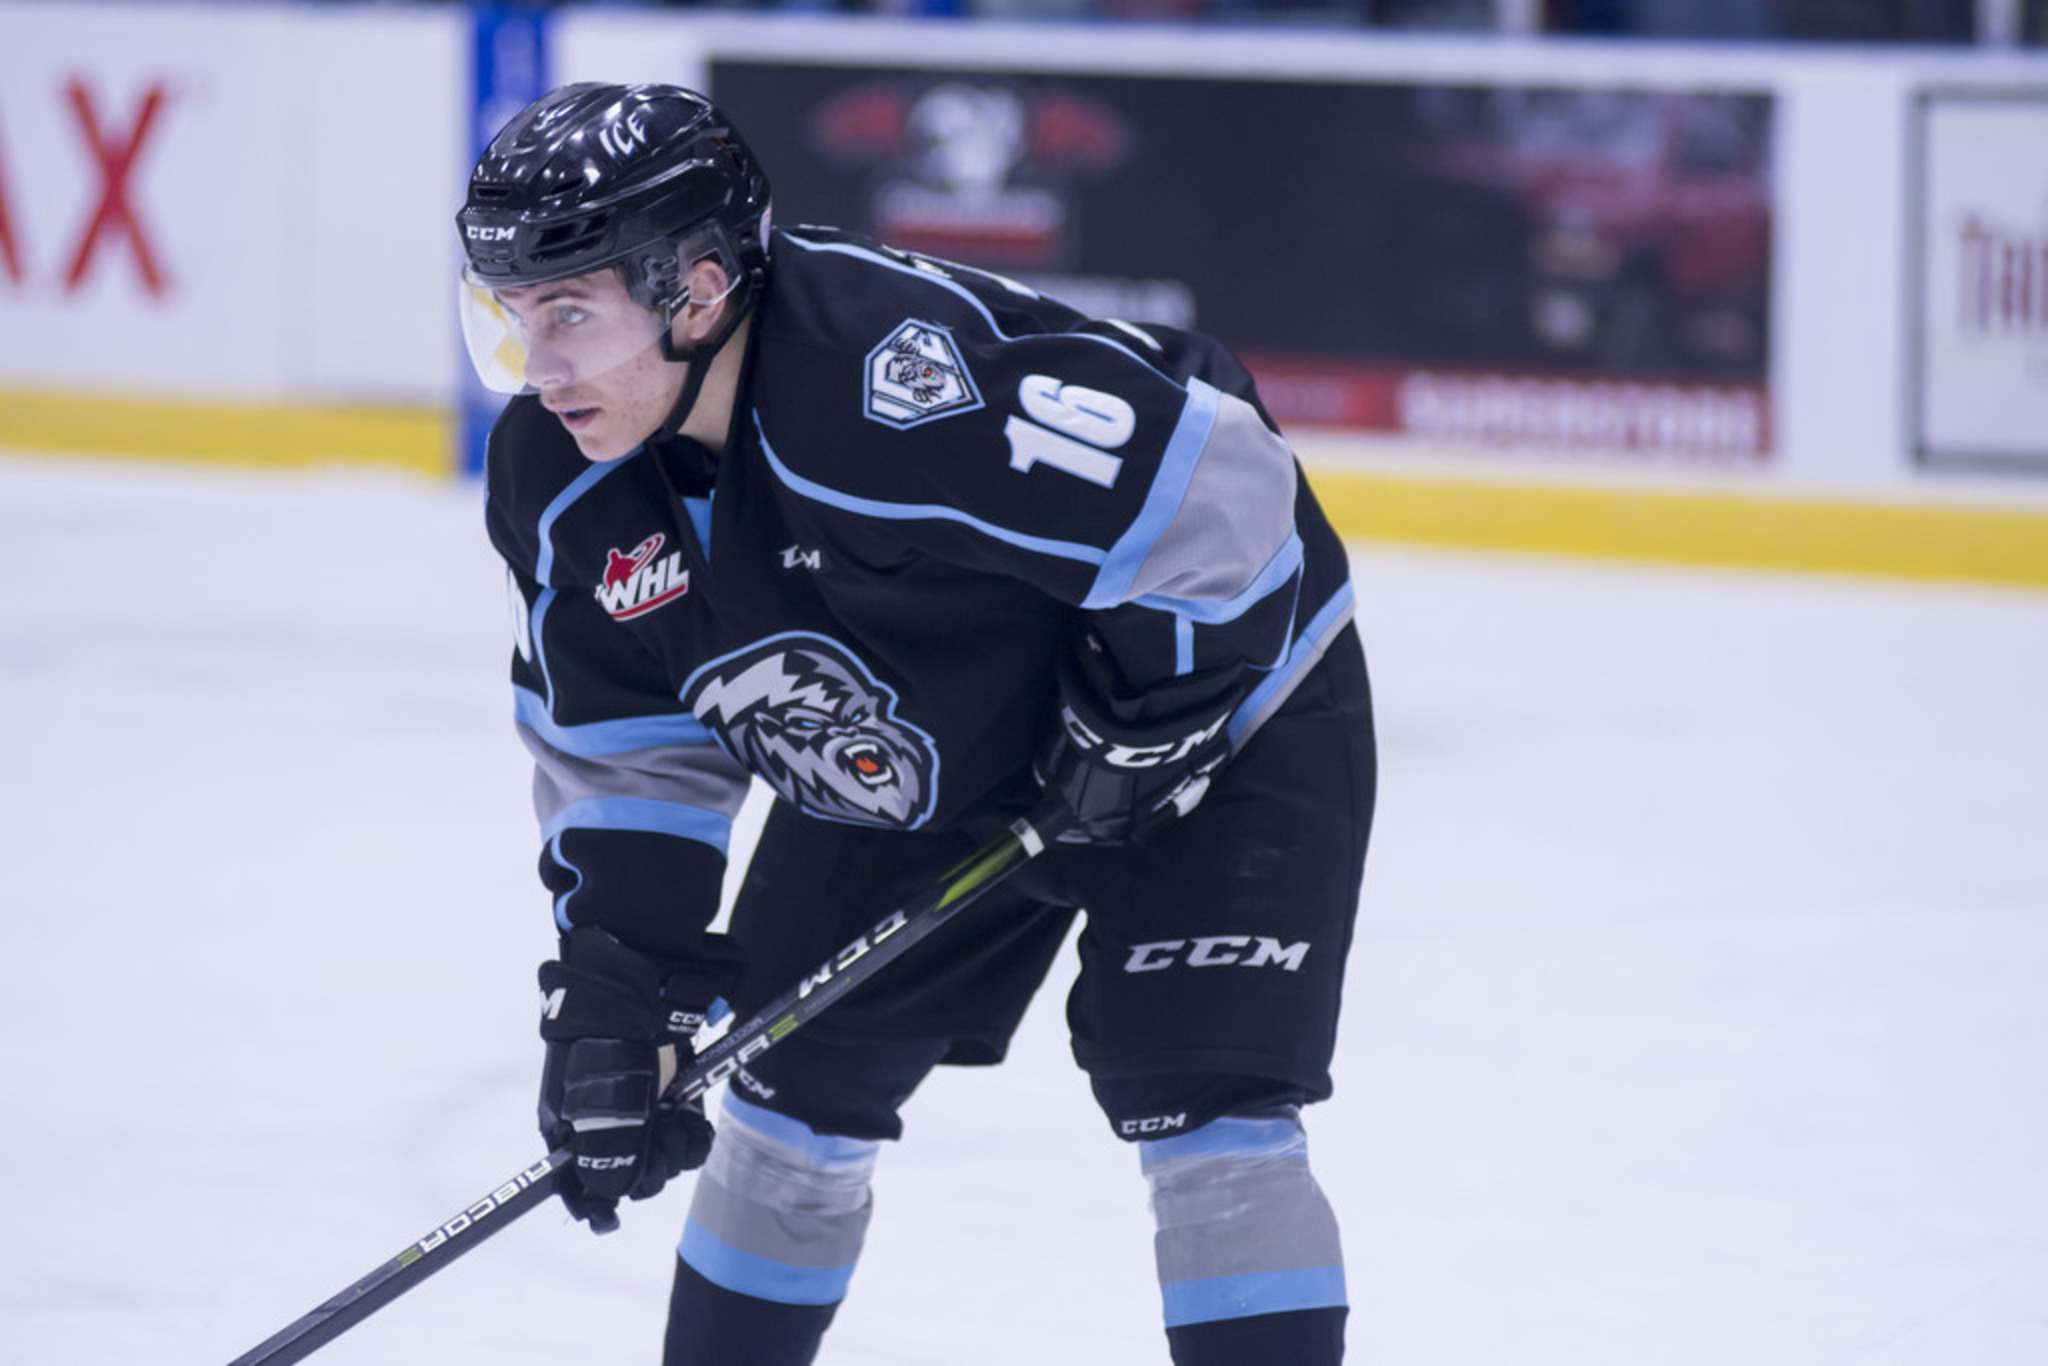 SUPPLIED</p><p>Winnipeg Ice player Connor McClennon will suit up for the Winnipeg Blues thanks to the WHL's temporary transfer rule.</p>